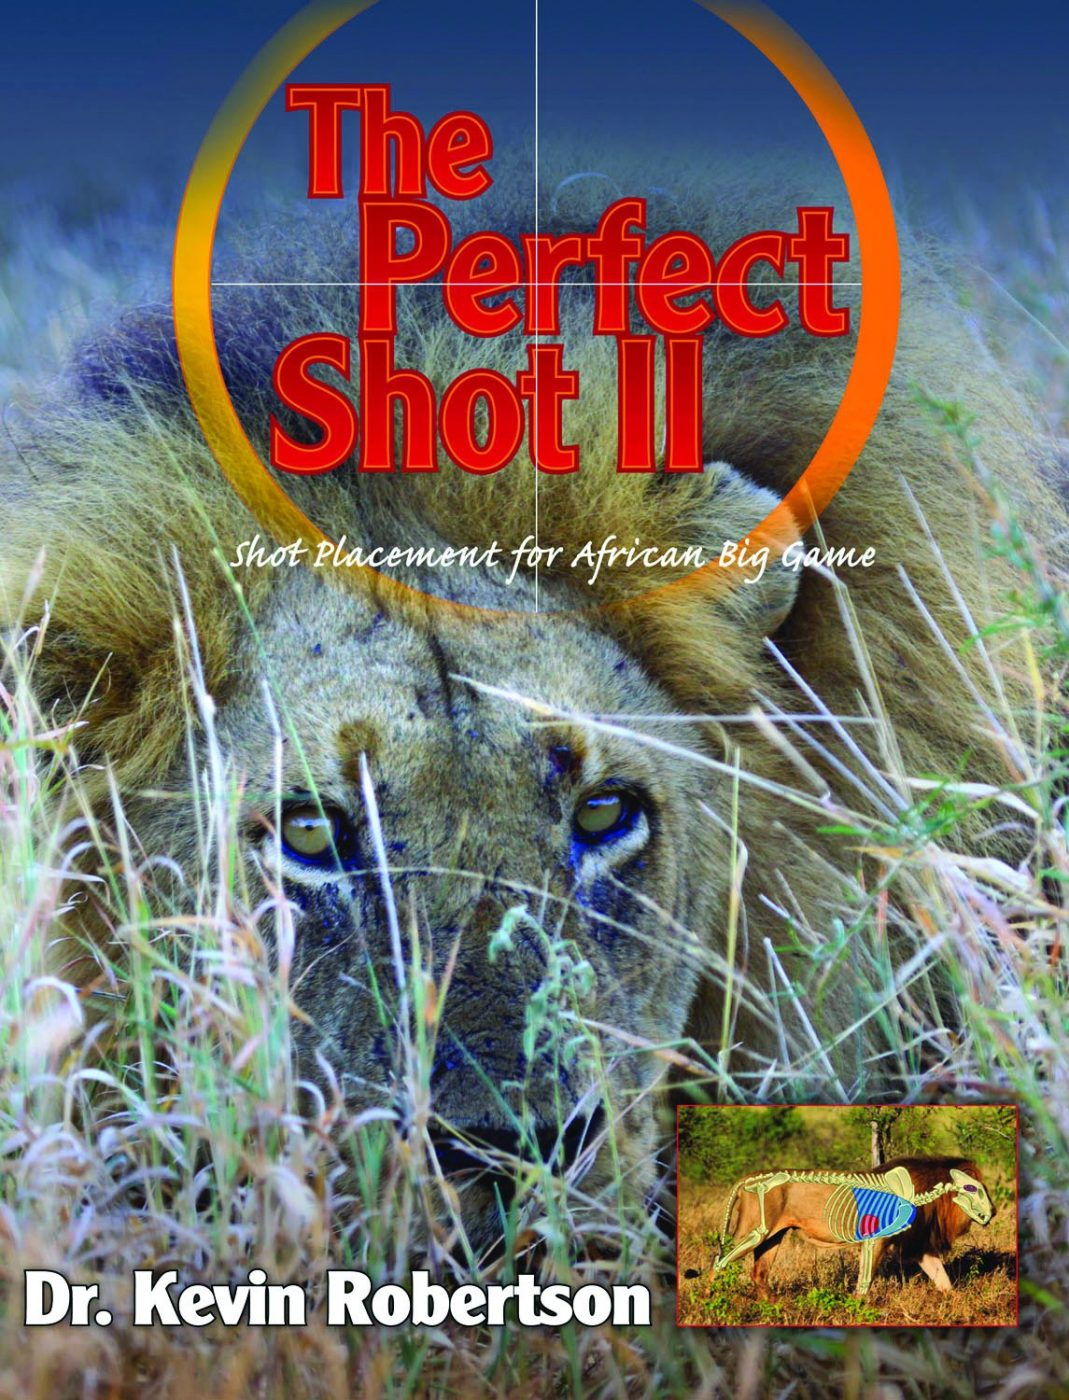 the_perfect_shott_ii